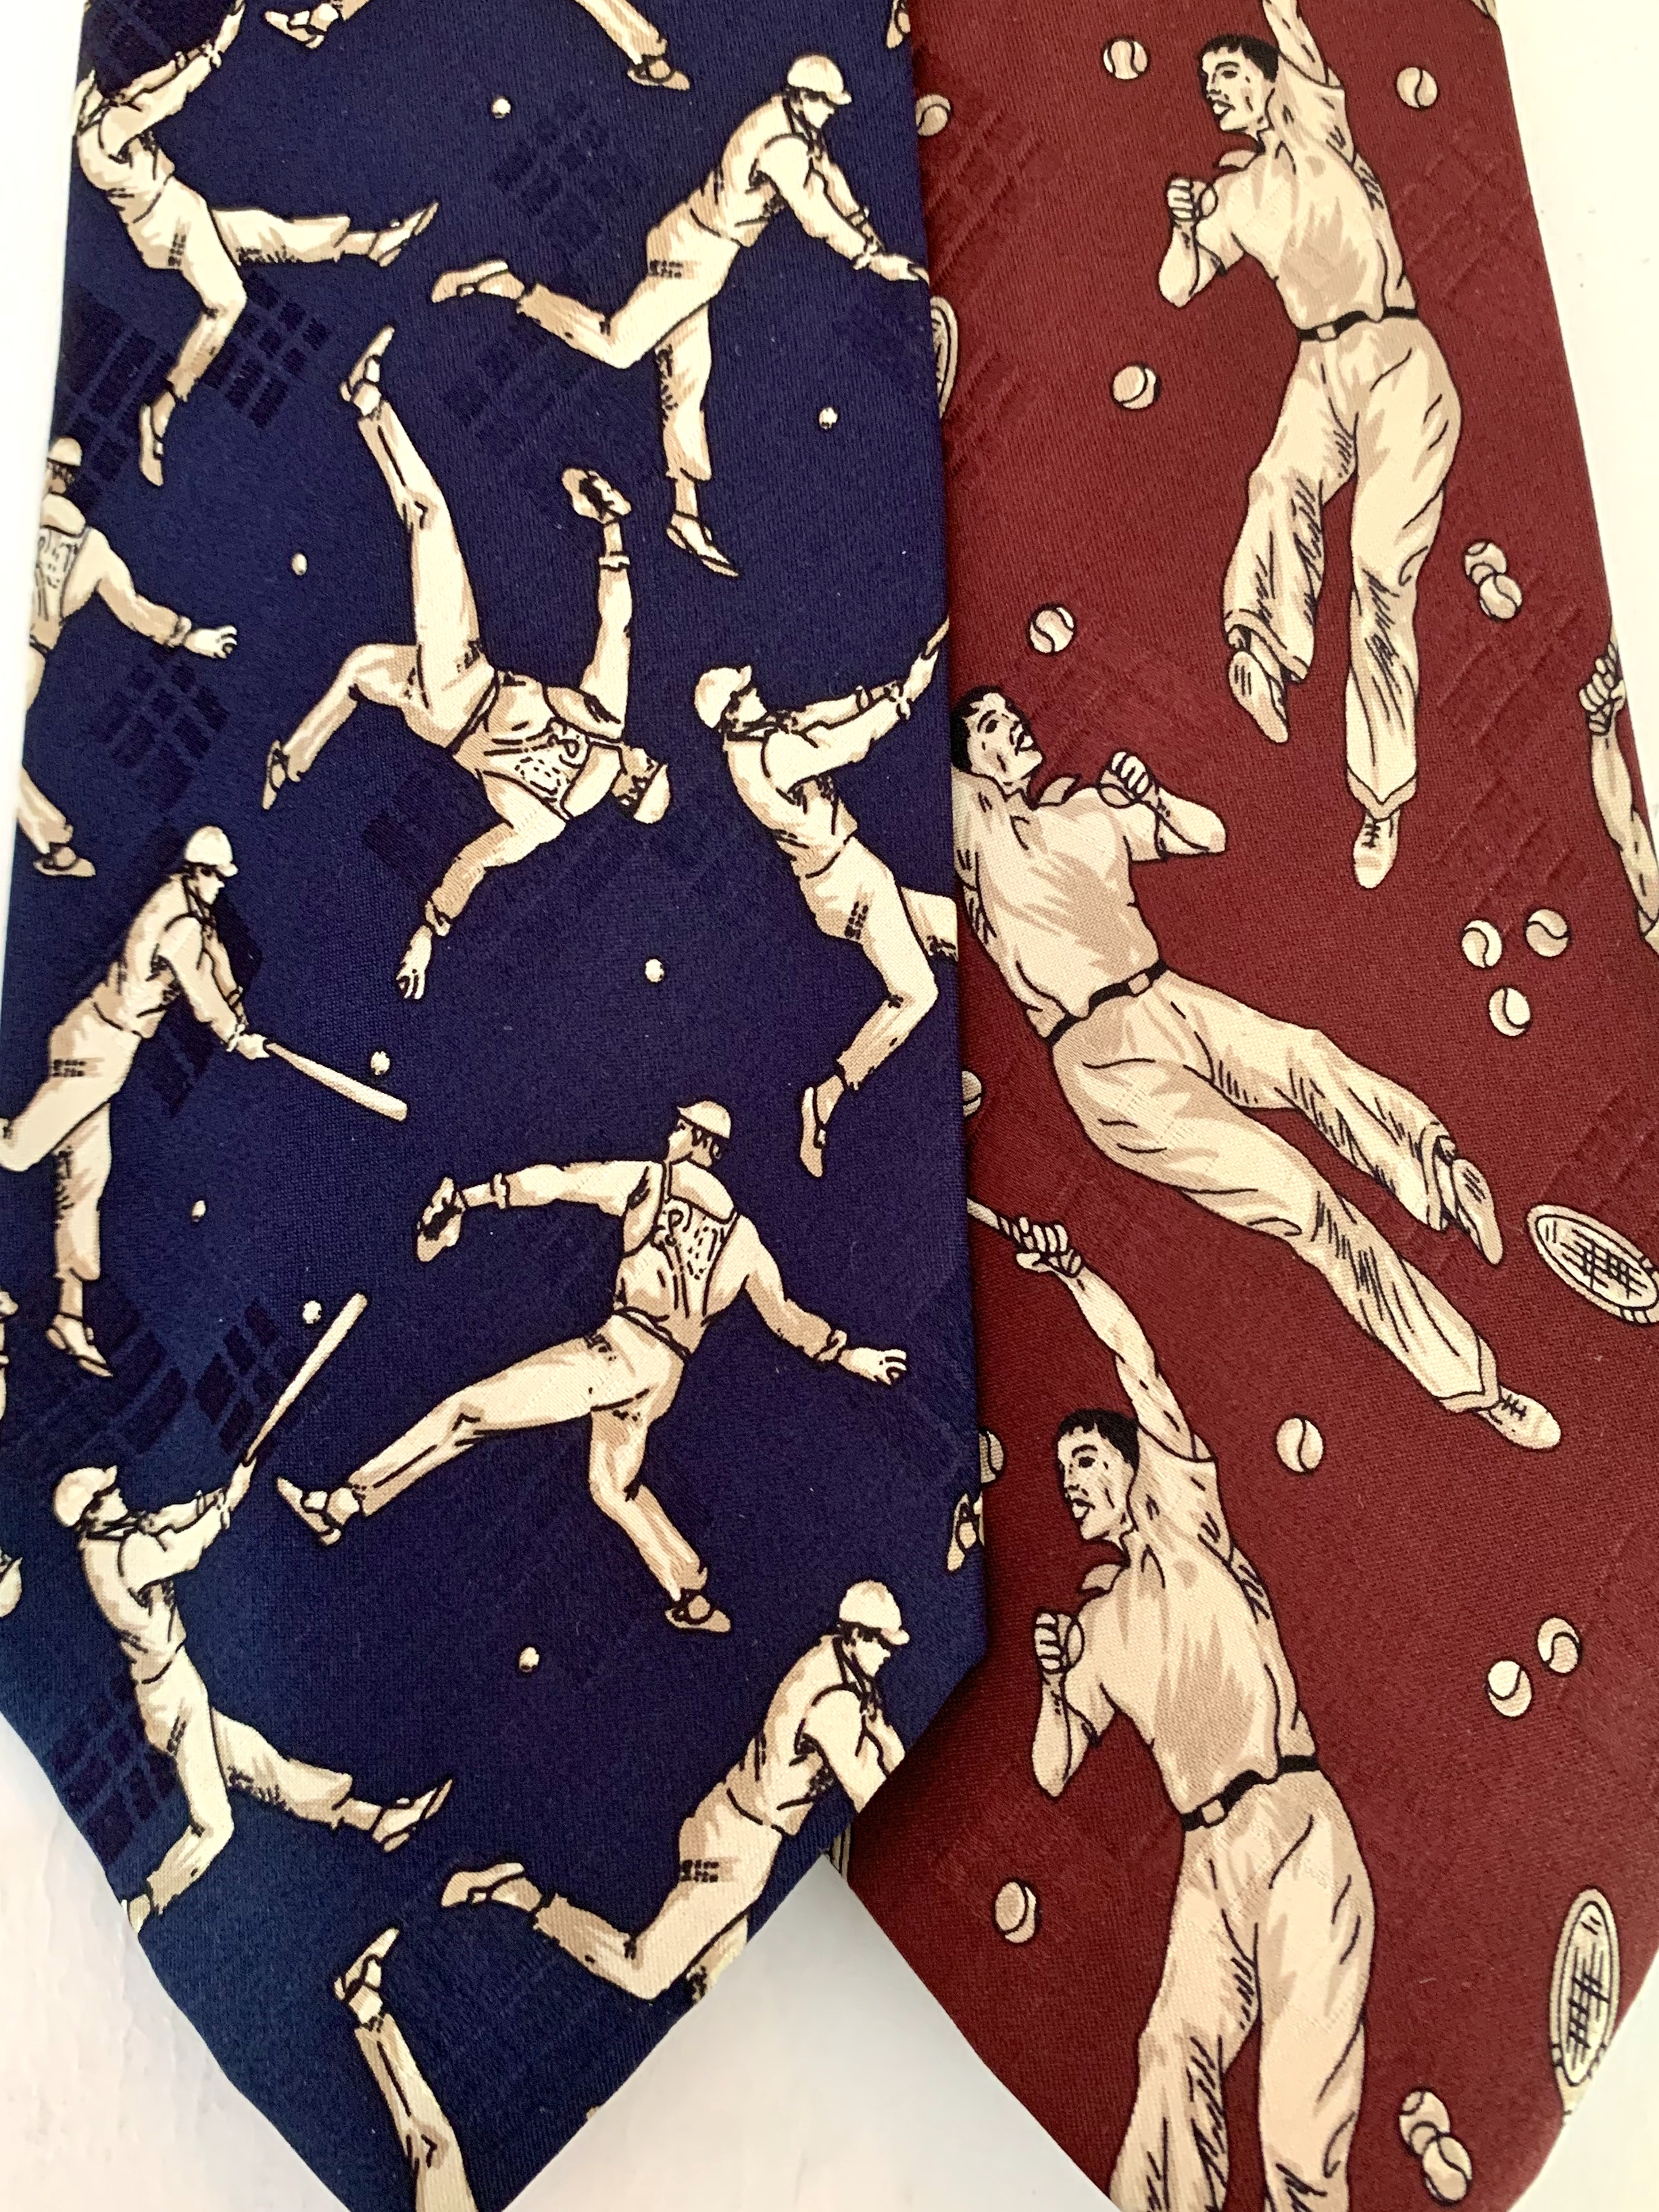 Vintage Sports Players on Vintage Polo Tie